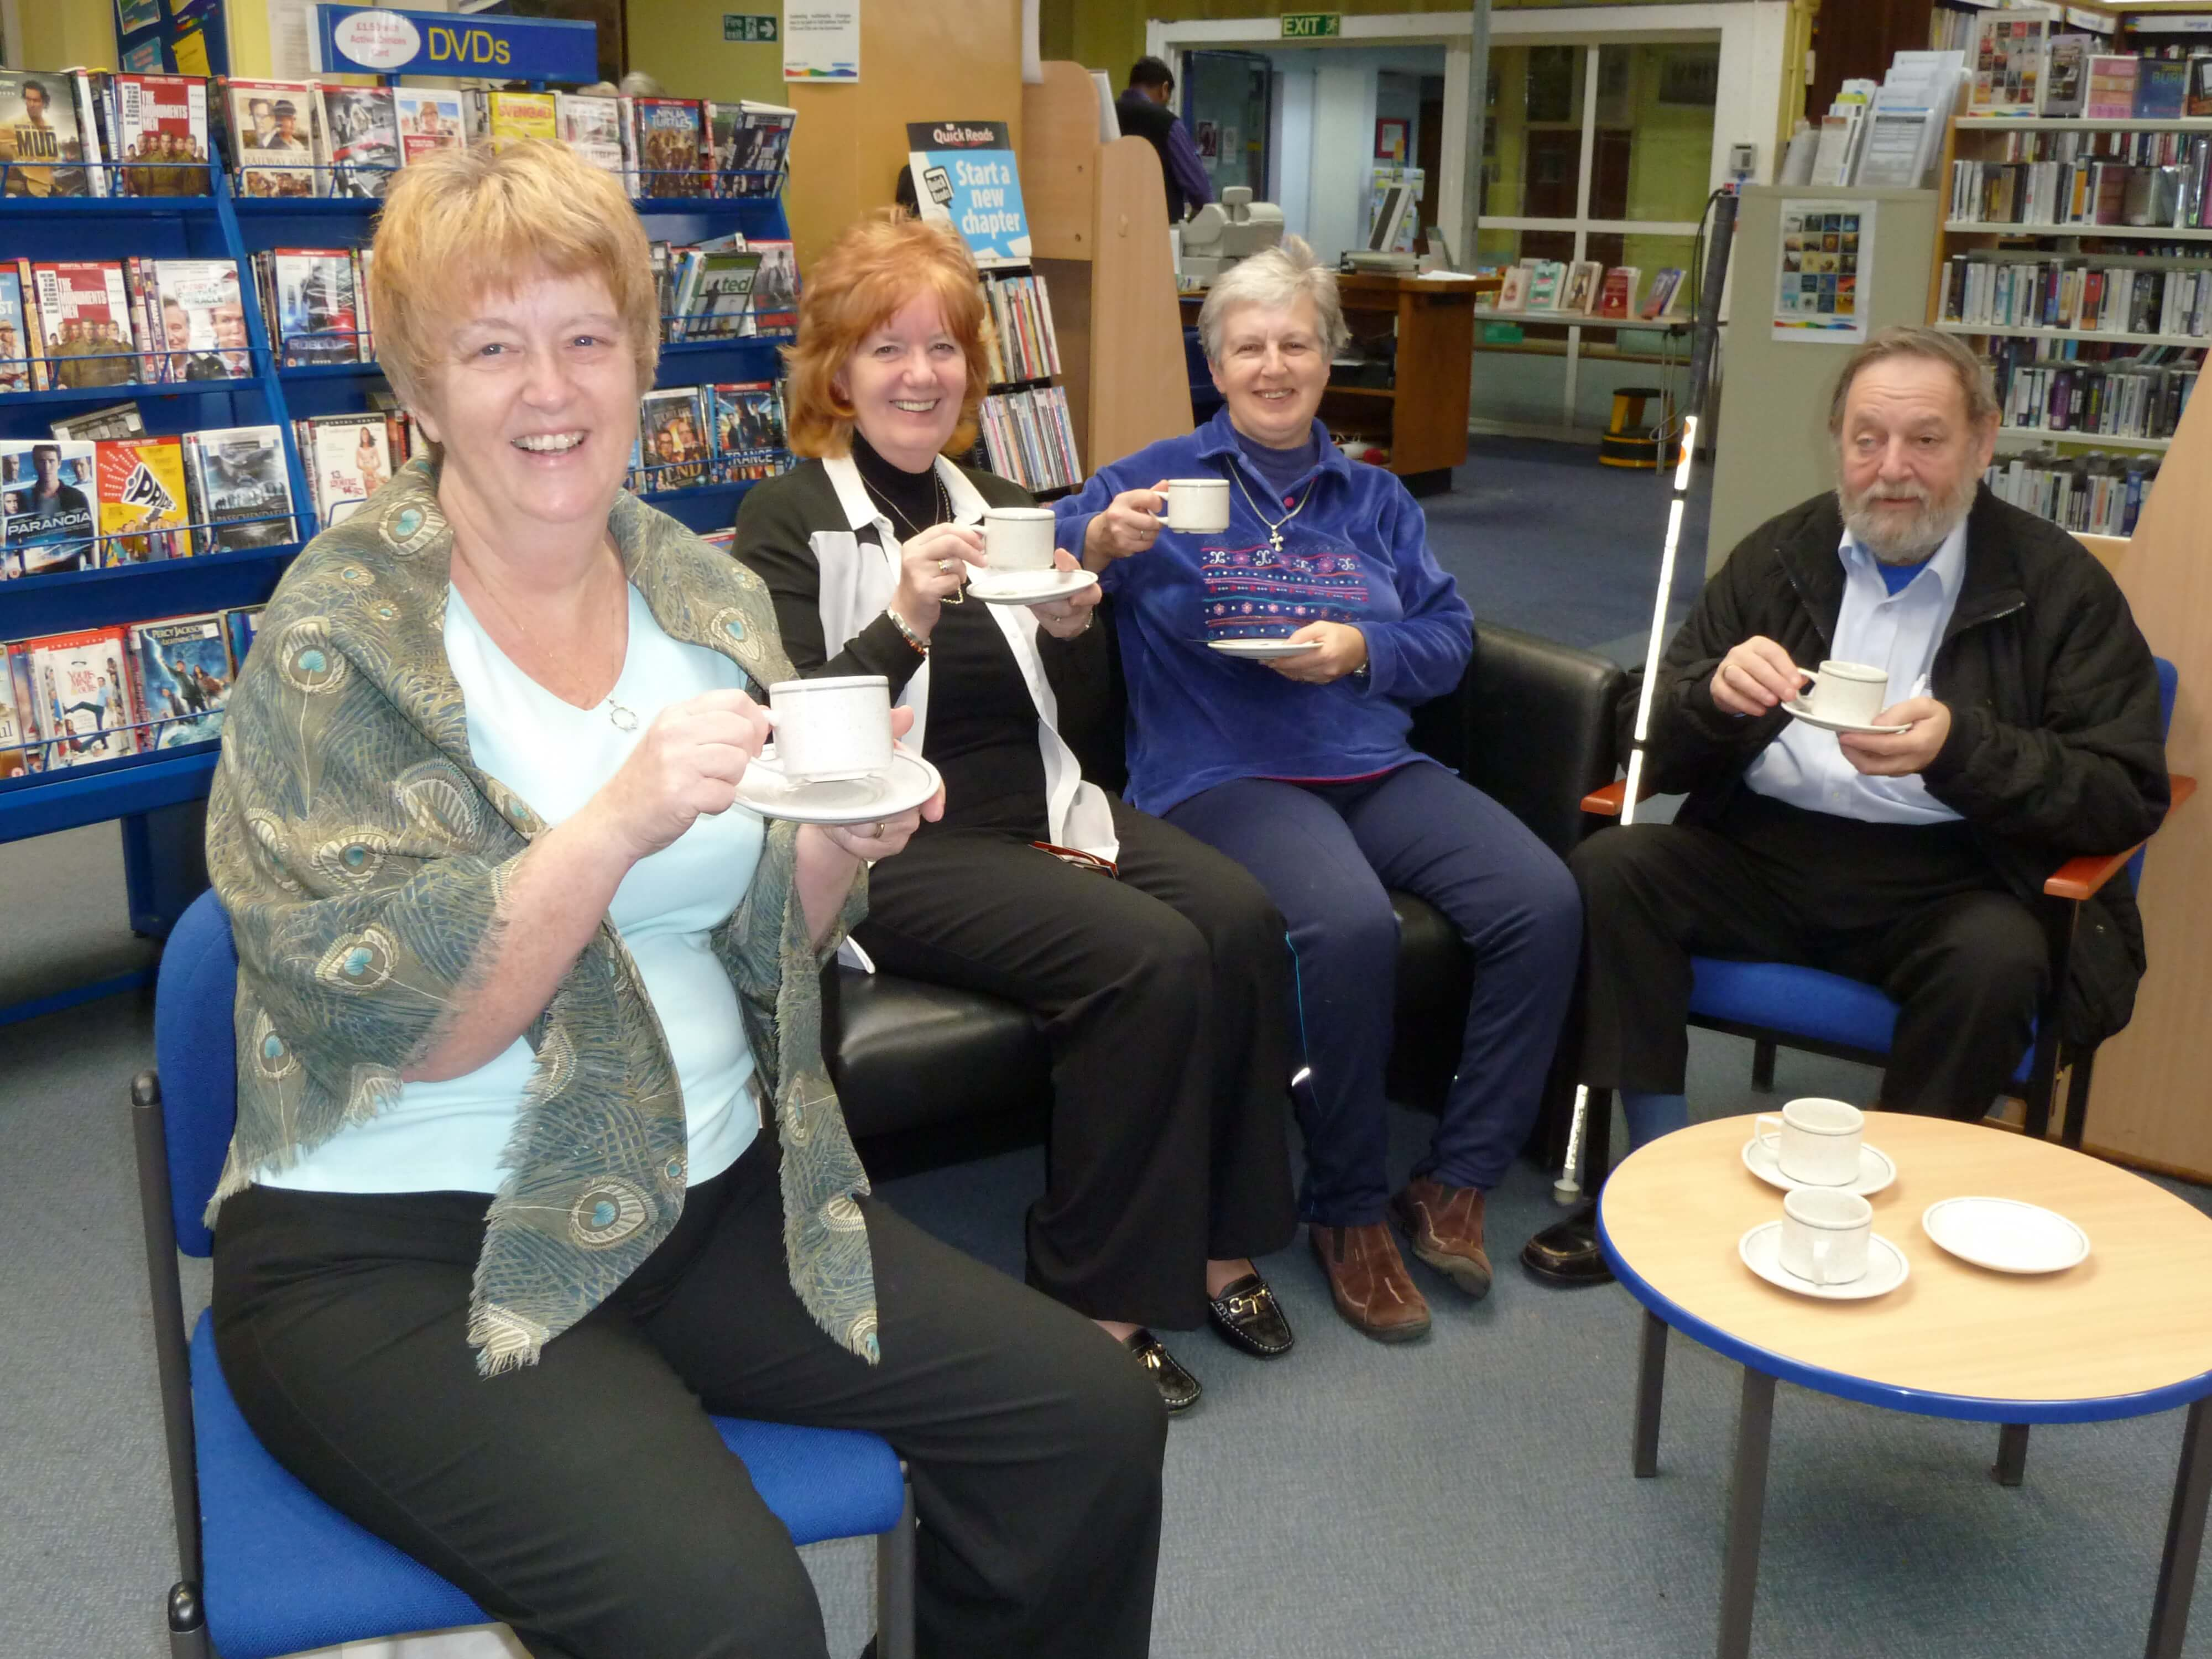 Ravenmeols Ward Labour councillor Catie Page and fellow Formby Hub co-ordinators Heather Davies and Jan Sterling with Derek enjoying a coffee and some cake.